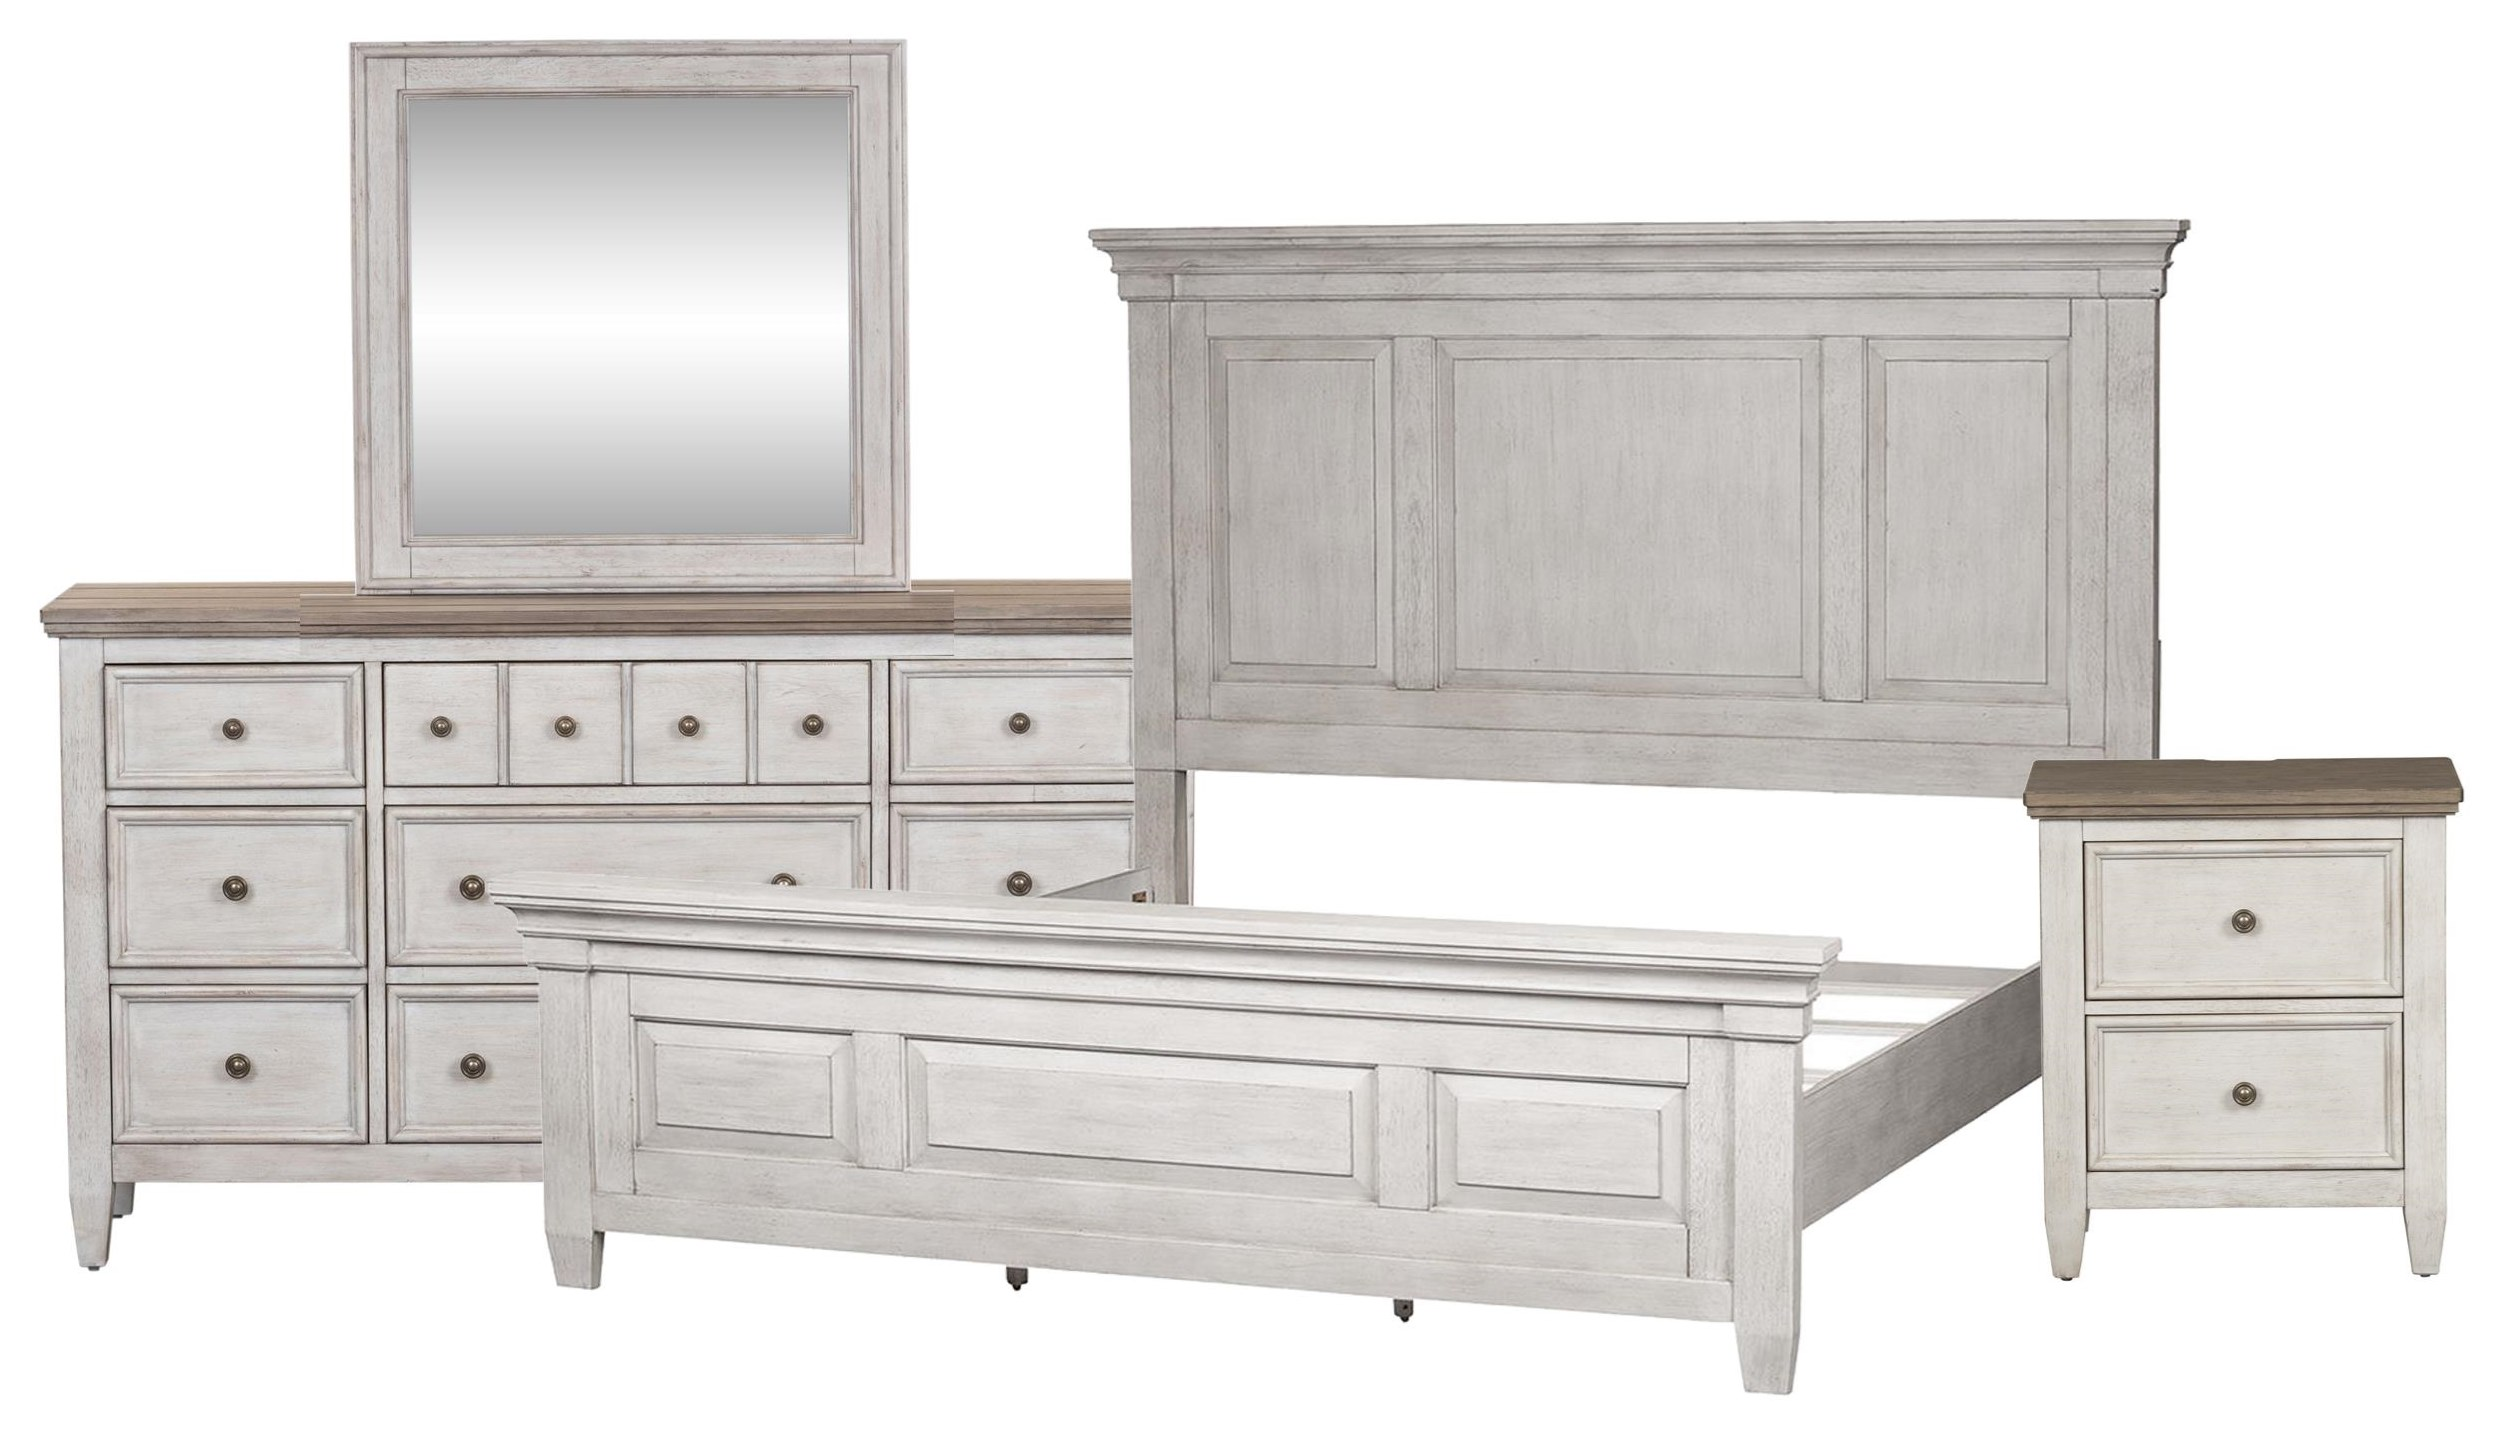 Heartland King Panel Bed, Dresser, Mirror, Nightstand by Liberty Furniture at Johnny Janosik